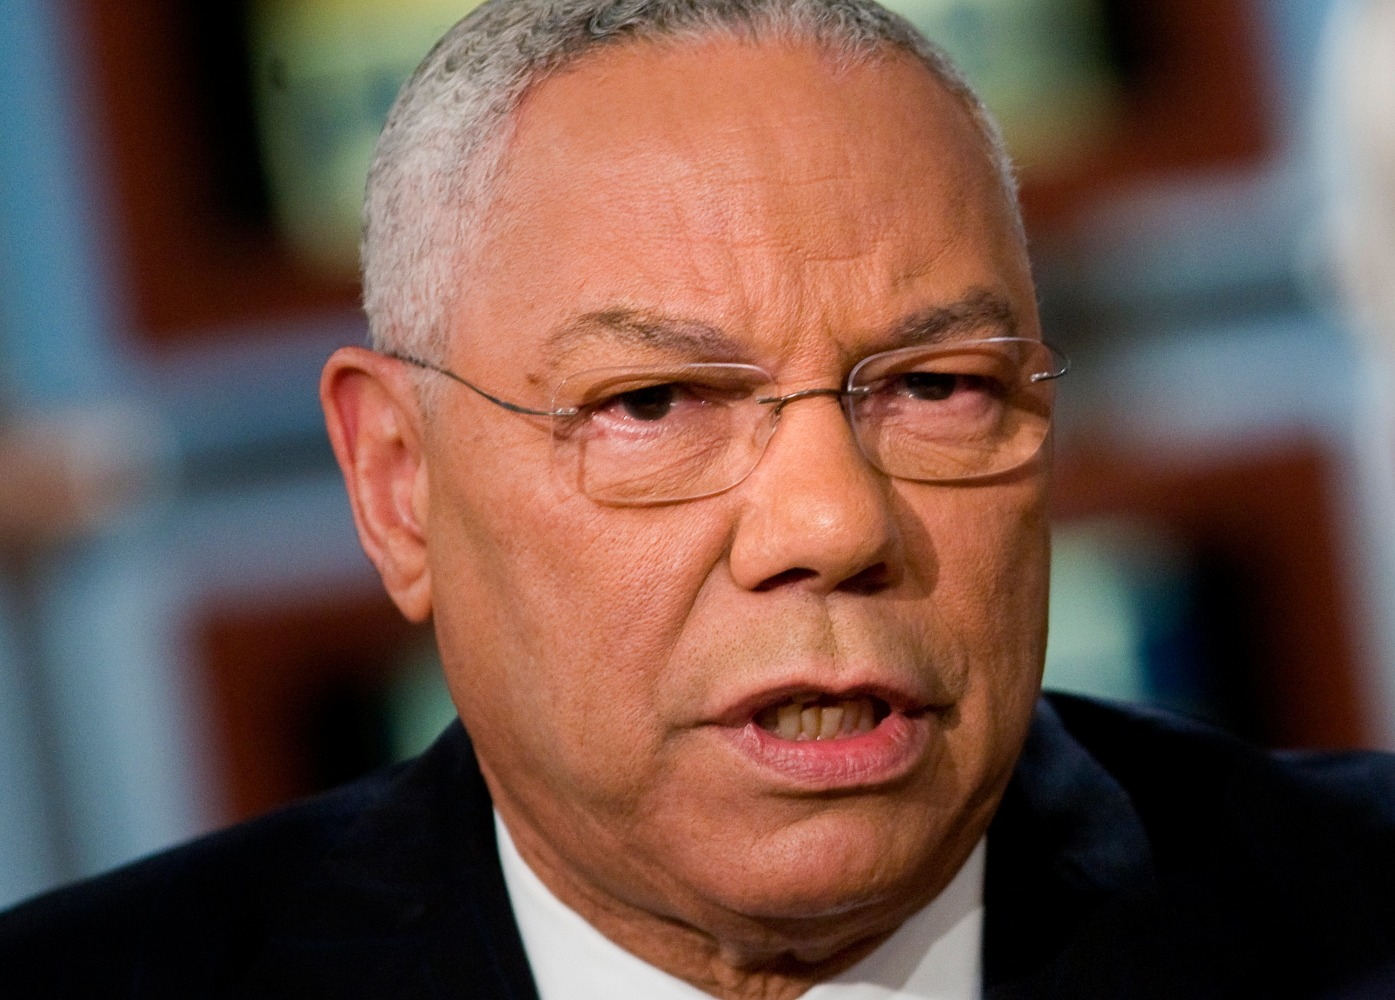 Clinton Told Fbi Colin Powell Recommended Private Email